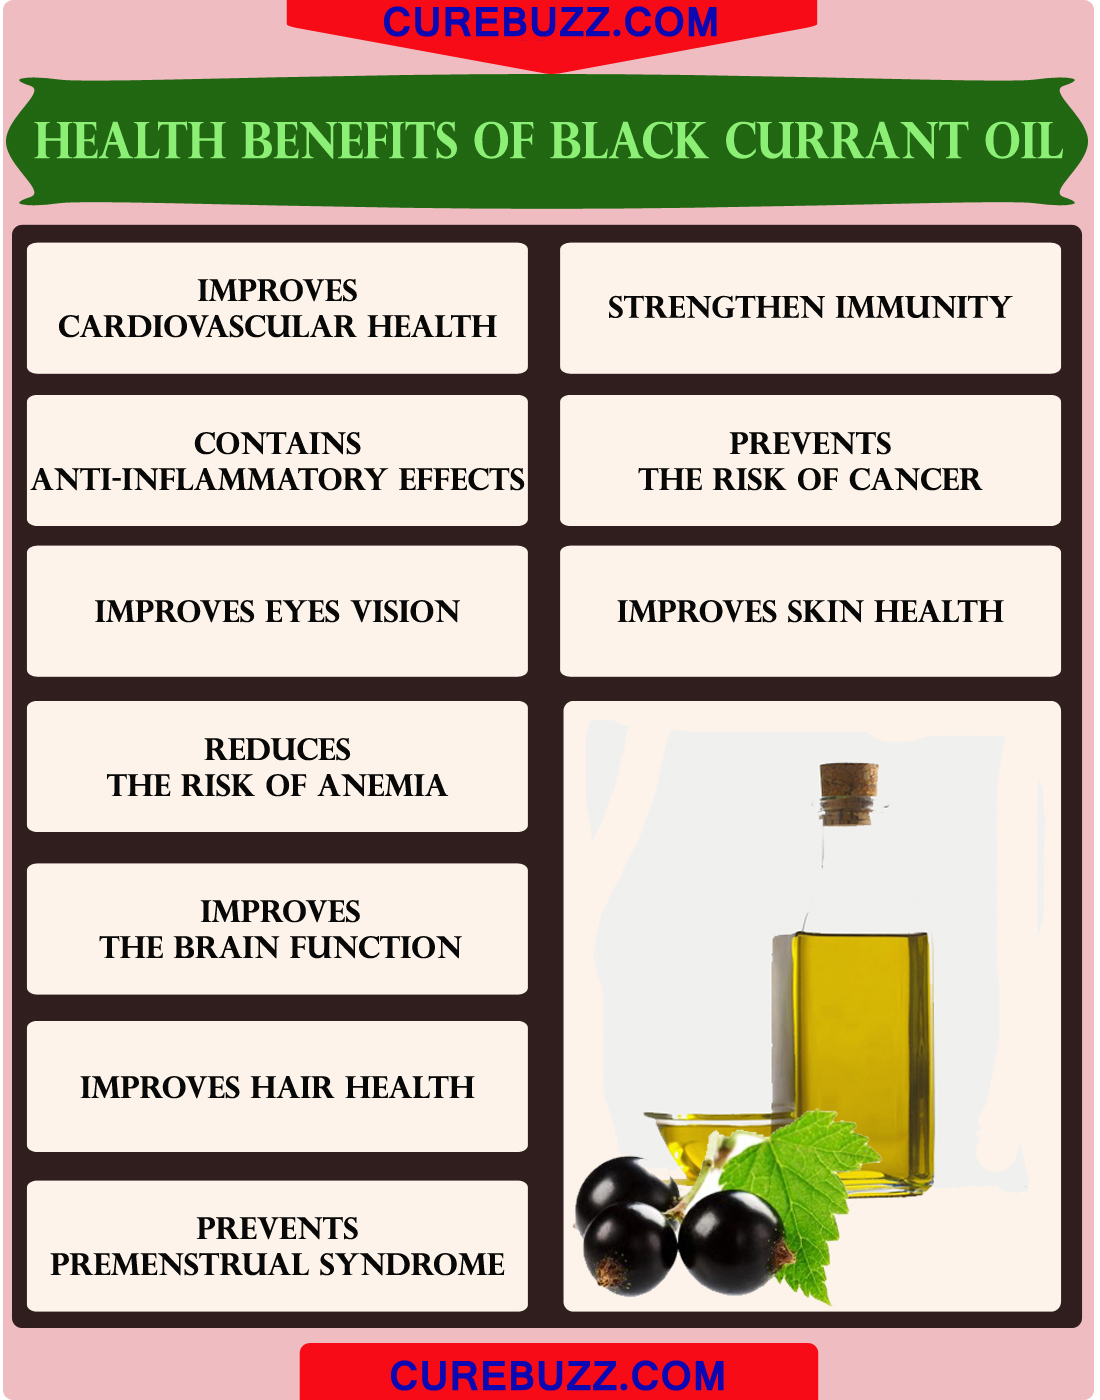 Health Benefits of Black Currant Oil